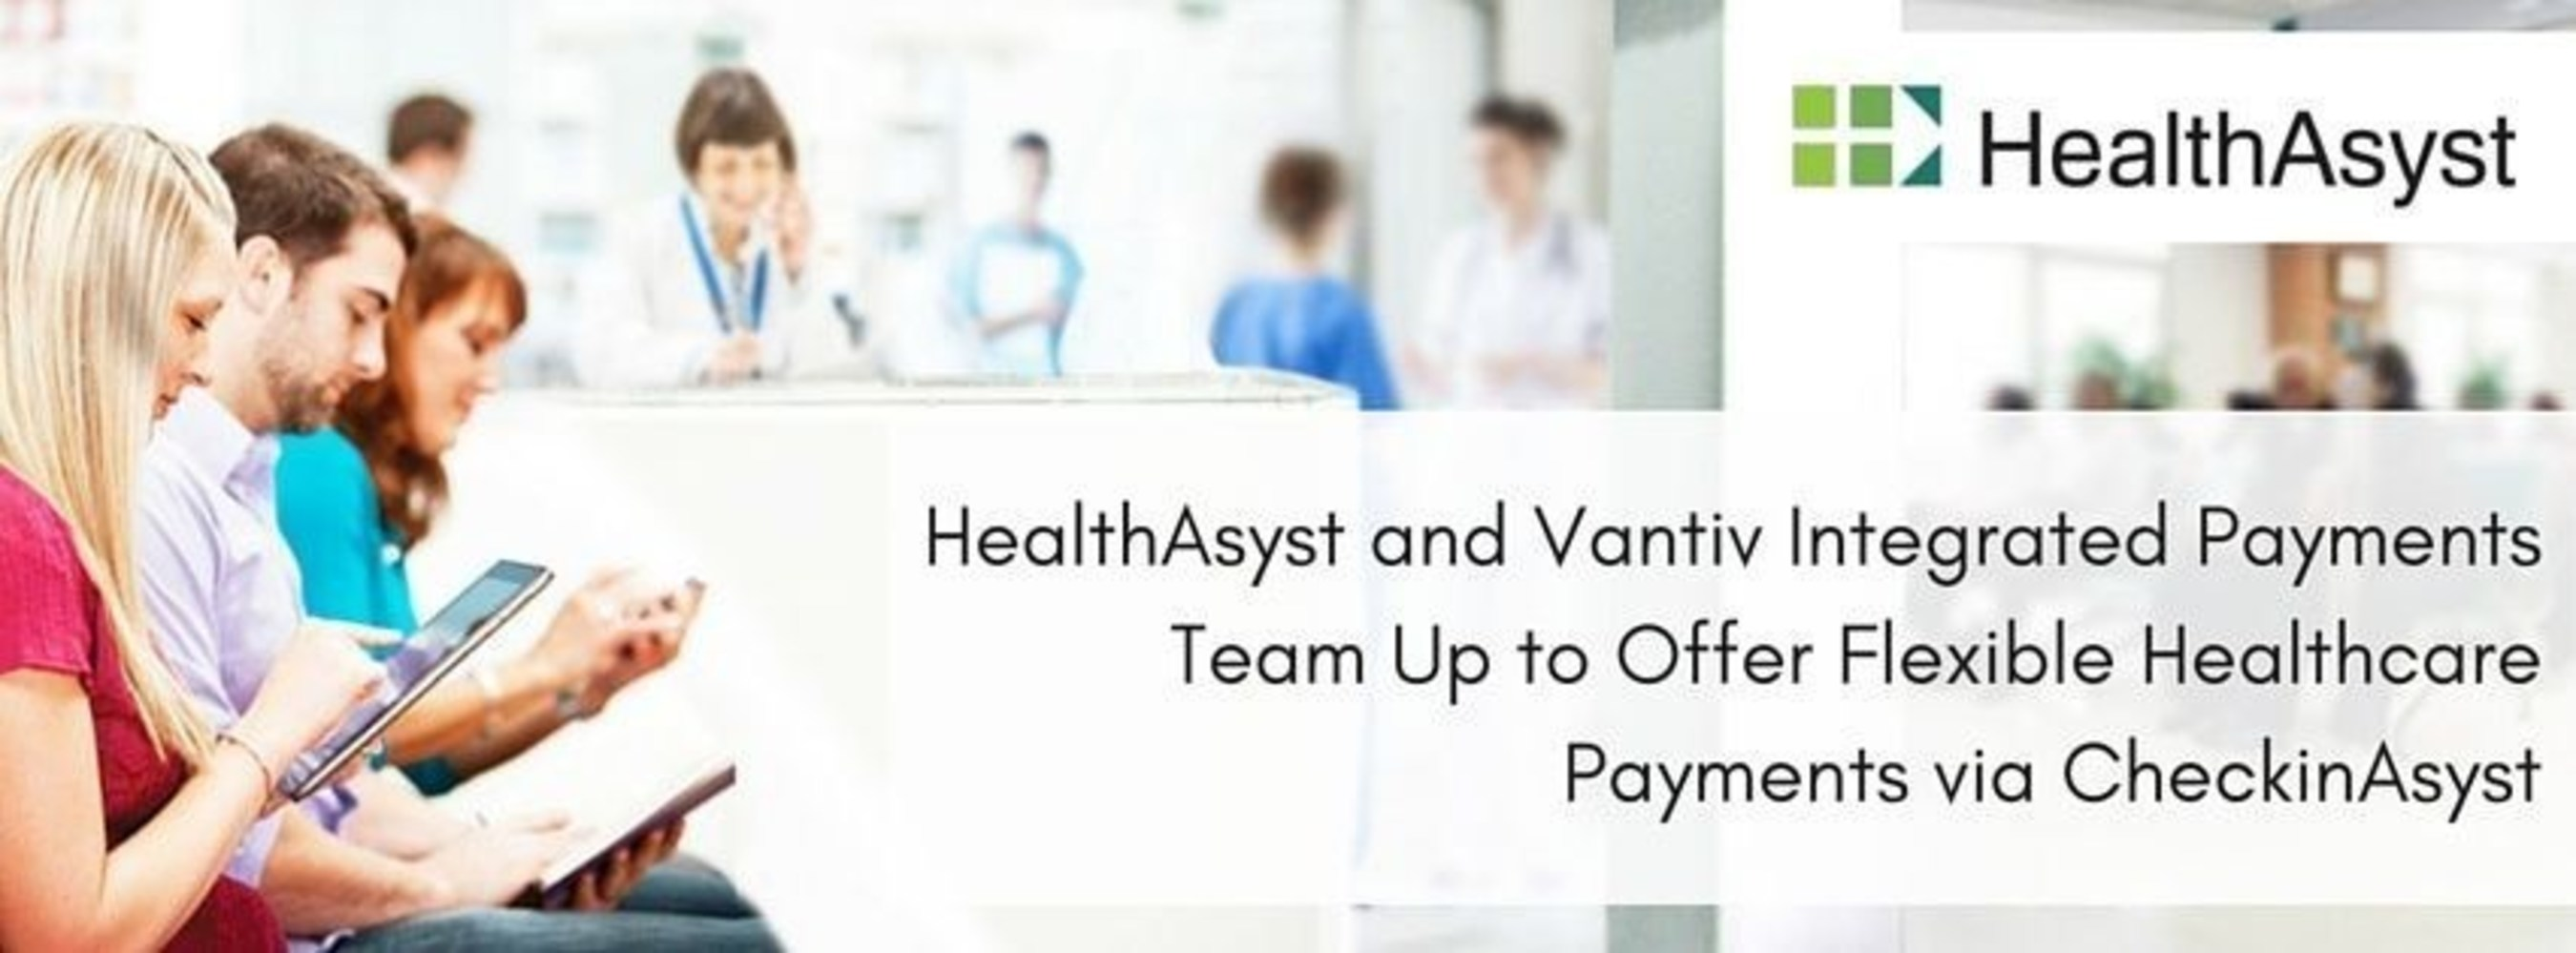 HealthAsyst Partners With Vantiv Integrated Payments to Offer Flexible Healthcare Payments via CheckinAsyst